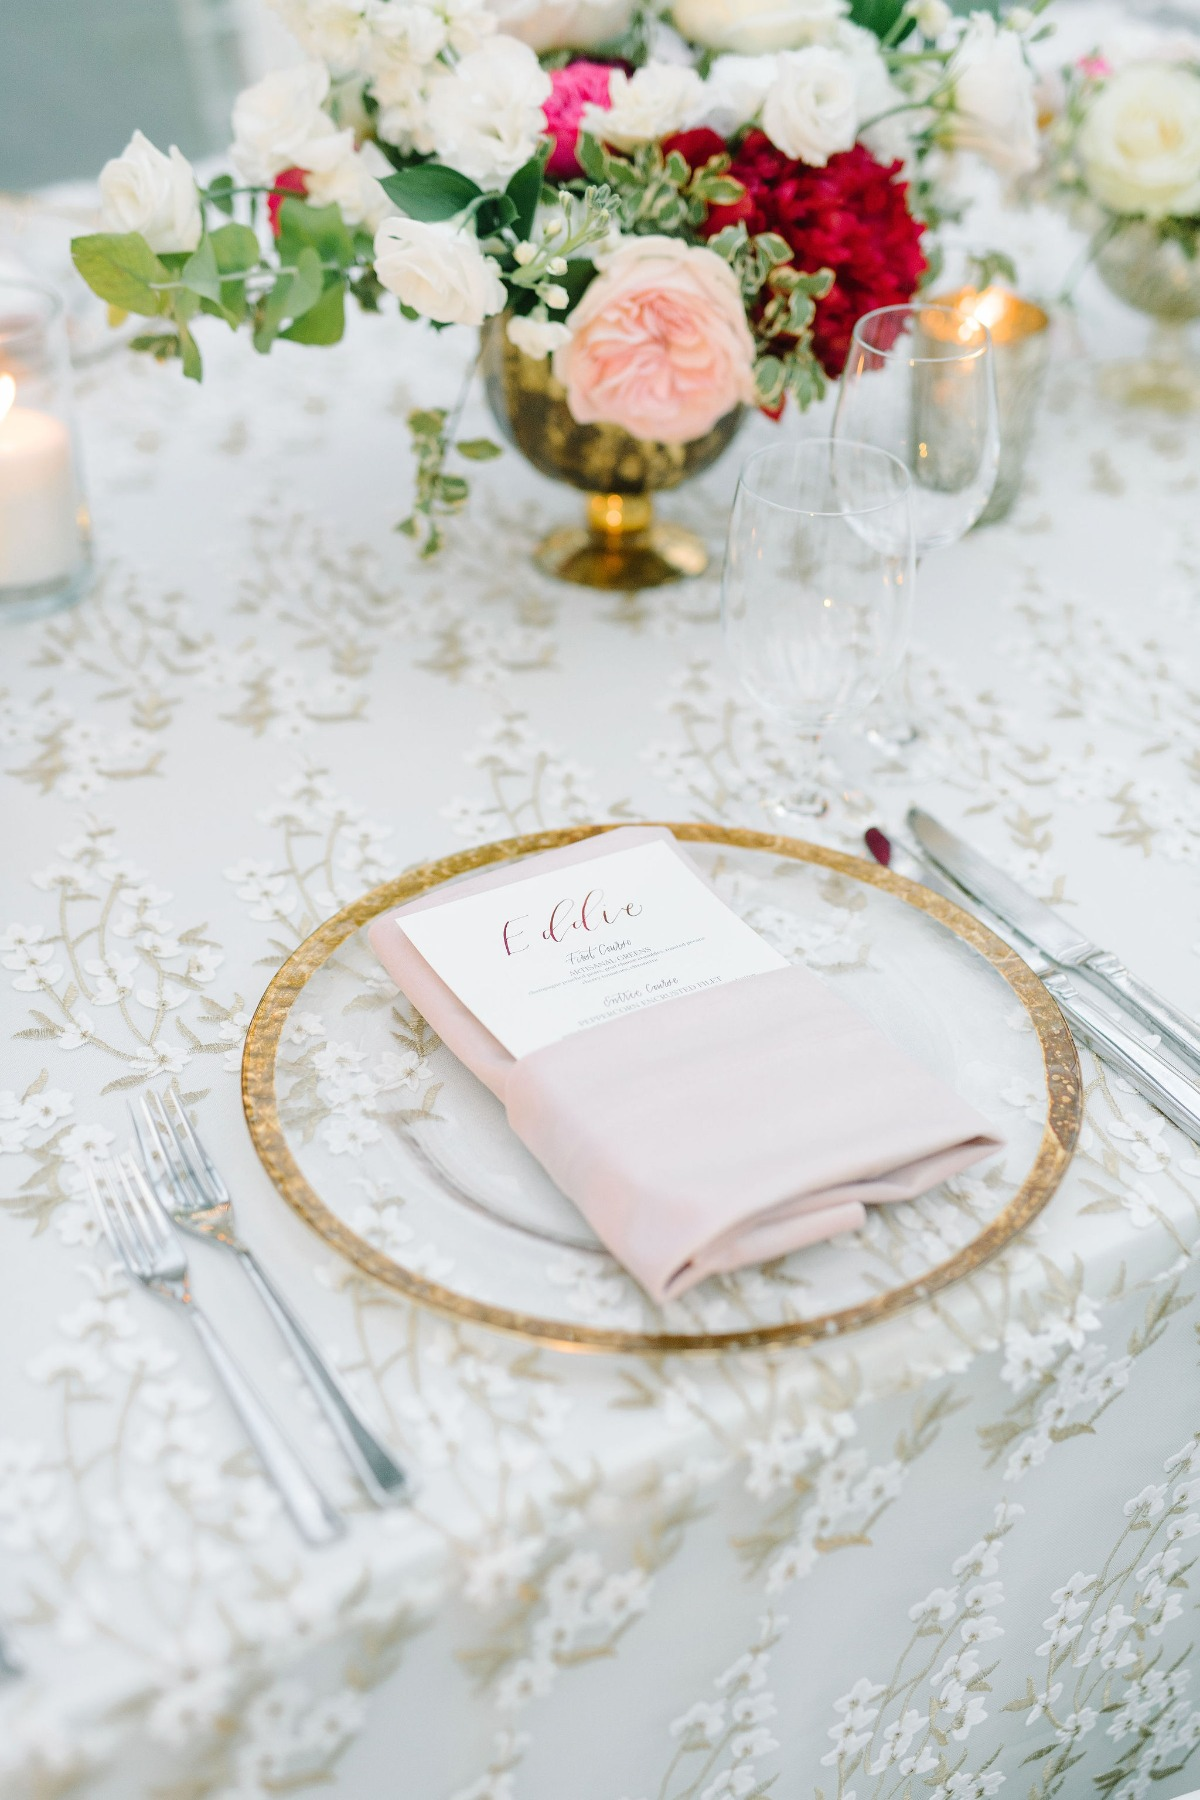 clear gold rimmed chargers with blush napkins for table setting